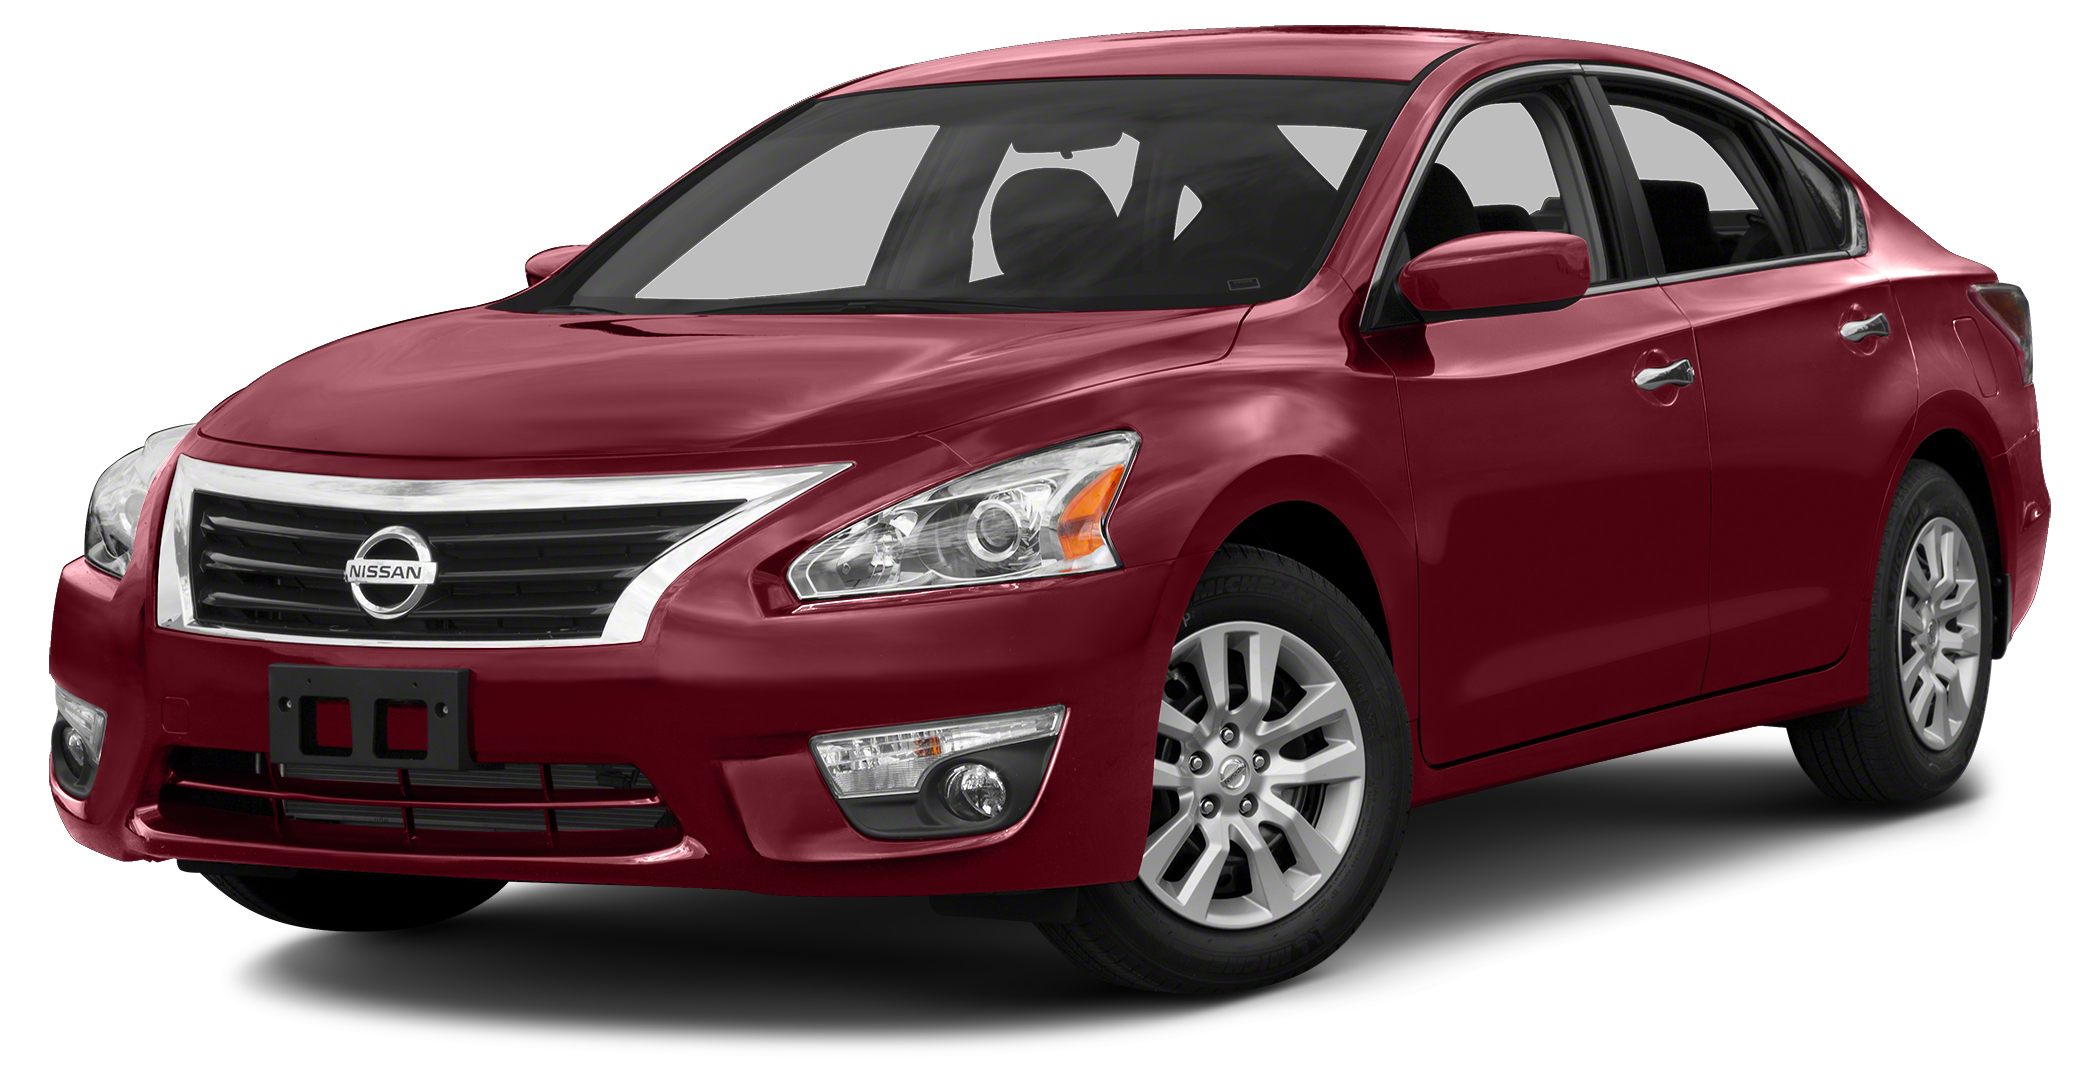 2013 Nissan Altima 25 S CVT with Xtronic and Value Value 3 Year 100k miles limited Power Train W